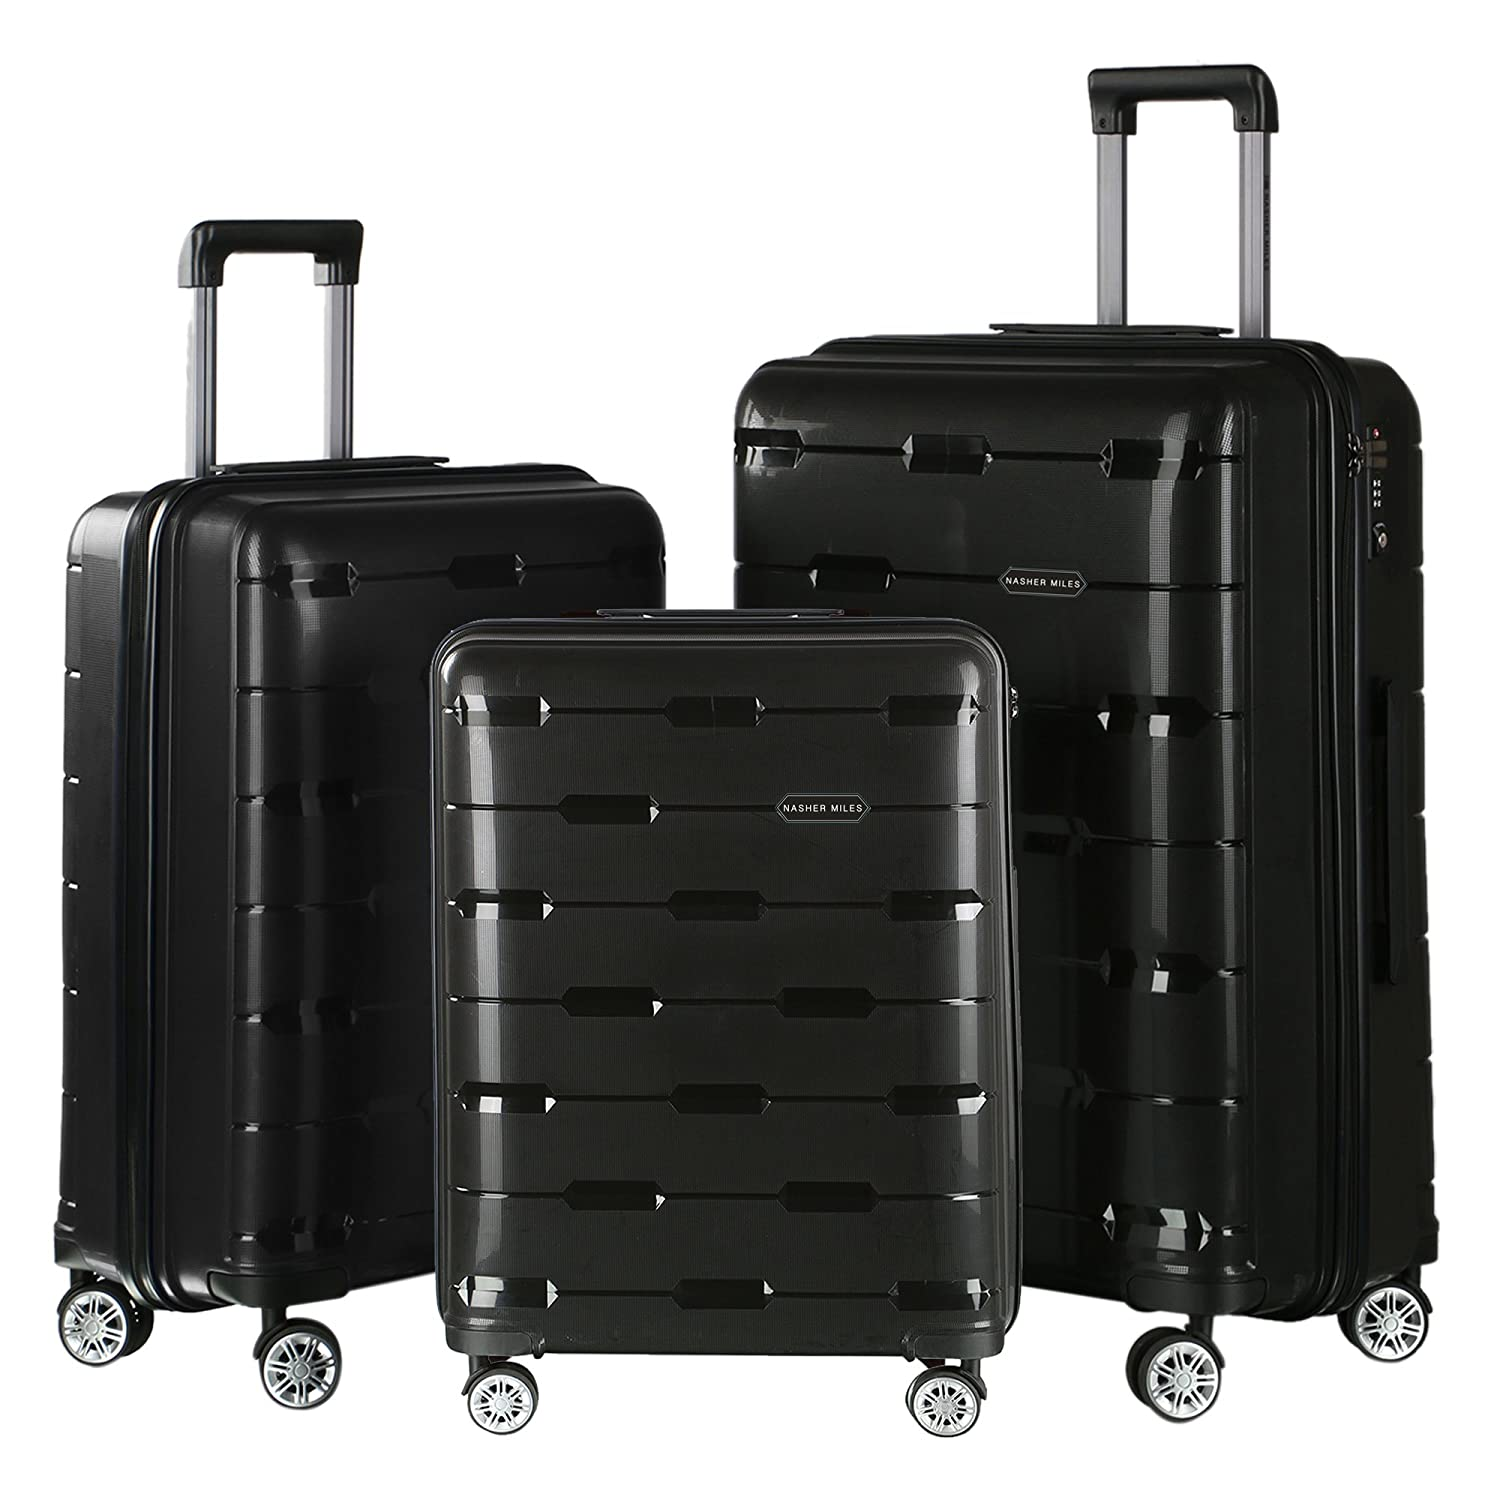 Nasher Miles Santorini PP Hard-Sided Luggage Set of 3 Trolley Travel Tourist  Bags (55 0325dbceb01b1